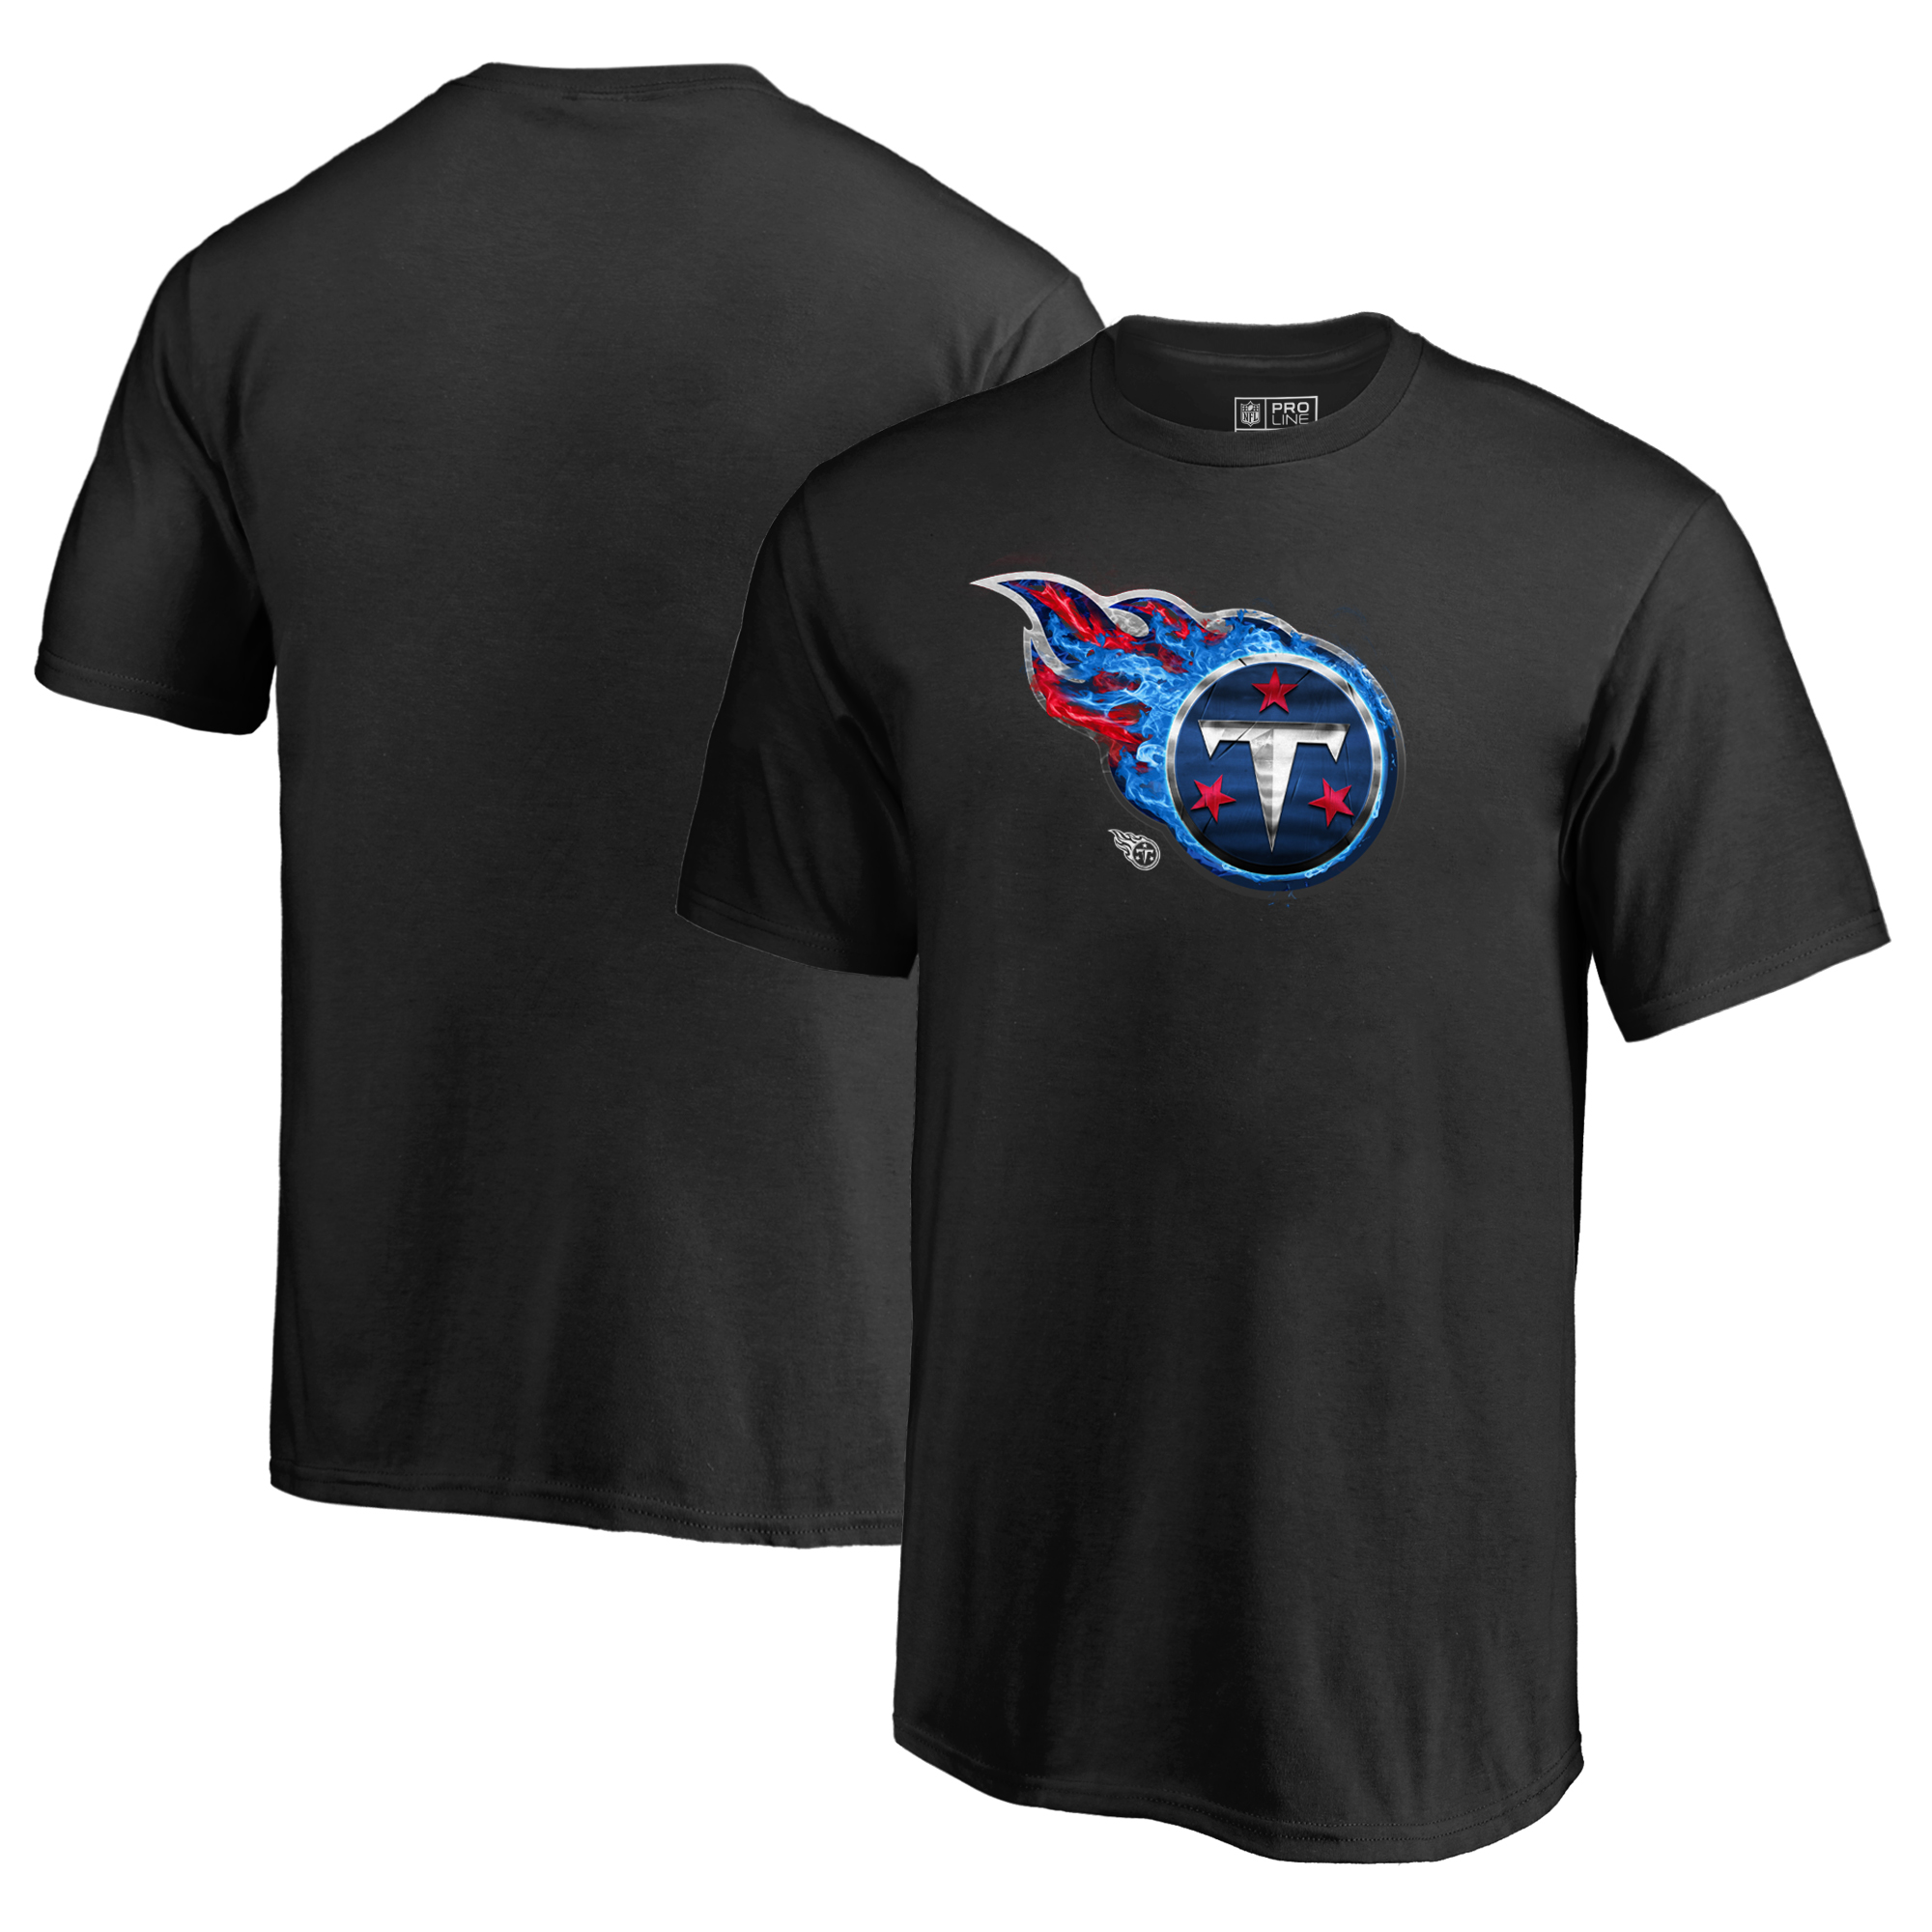 Tennessee Titans NFL Pro Line by Fanatics Branded Youth Midnight Mascot T-Shirt - Black